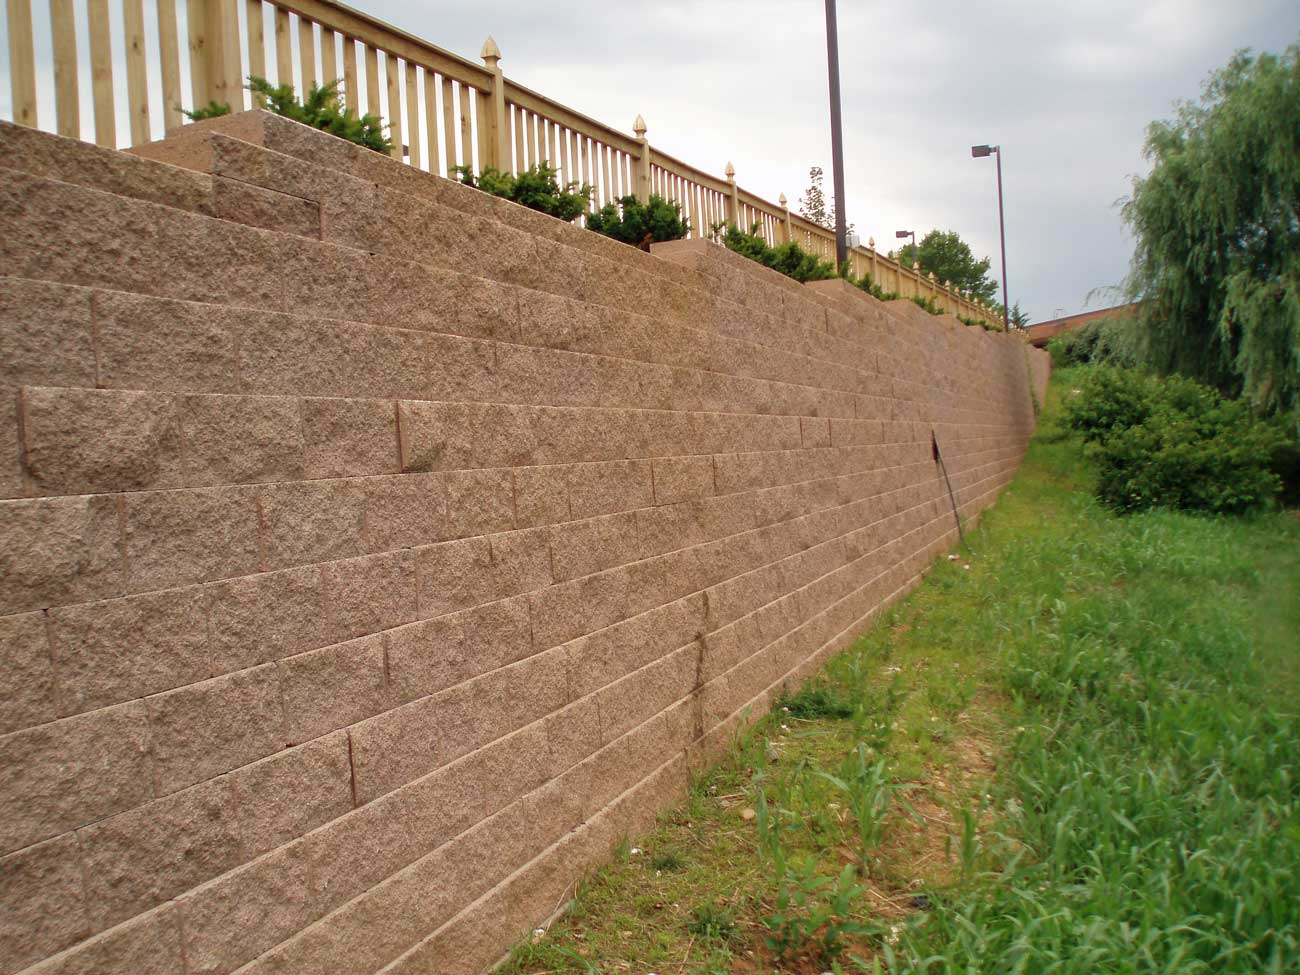 CornerStone block retaining wall Hilton Garden Inn